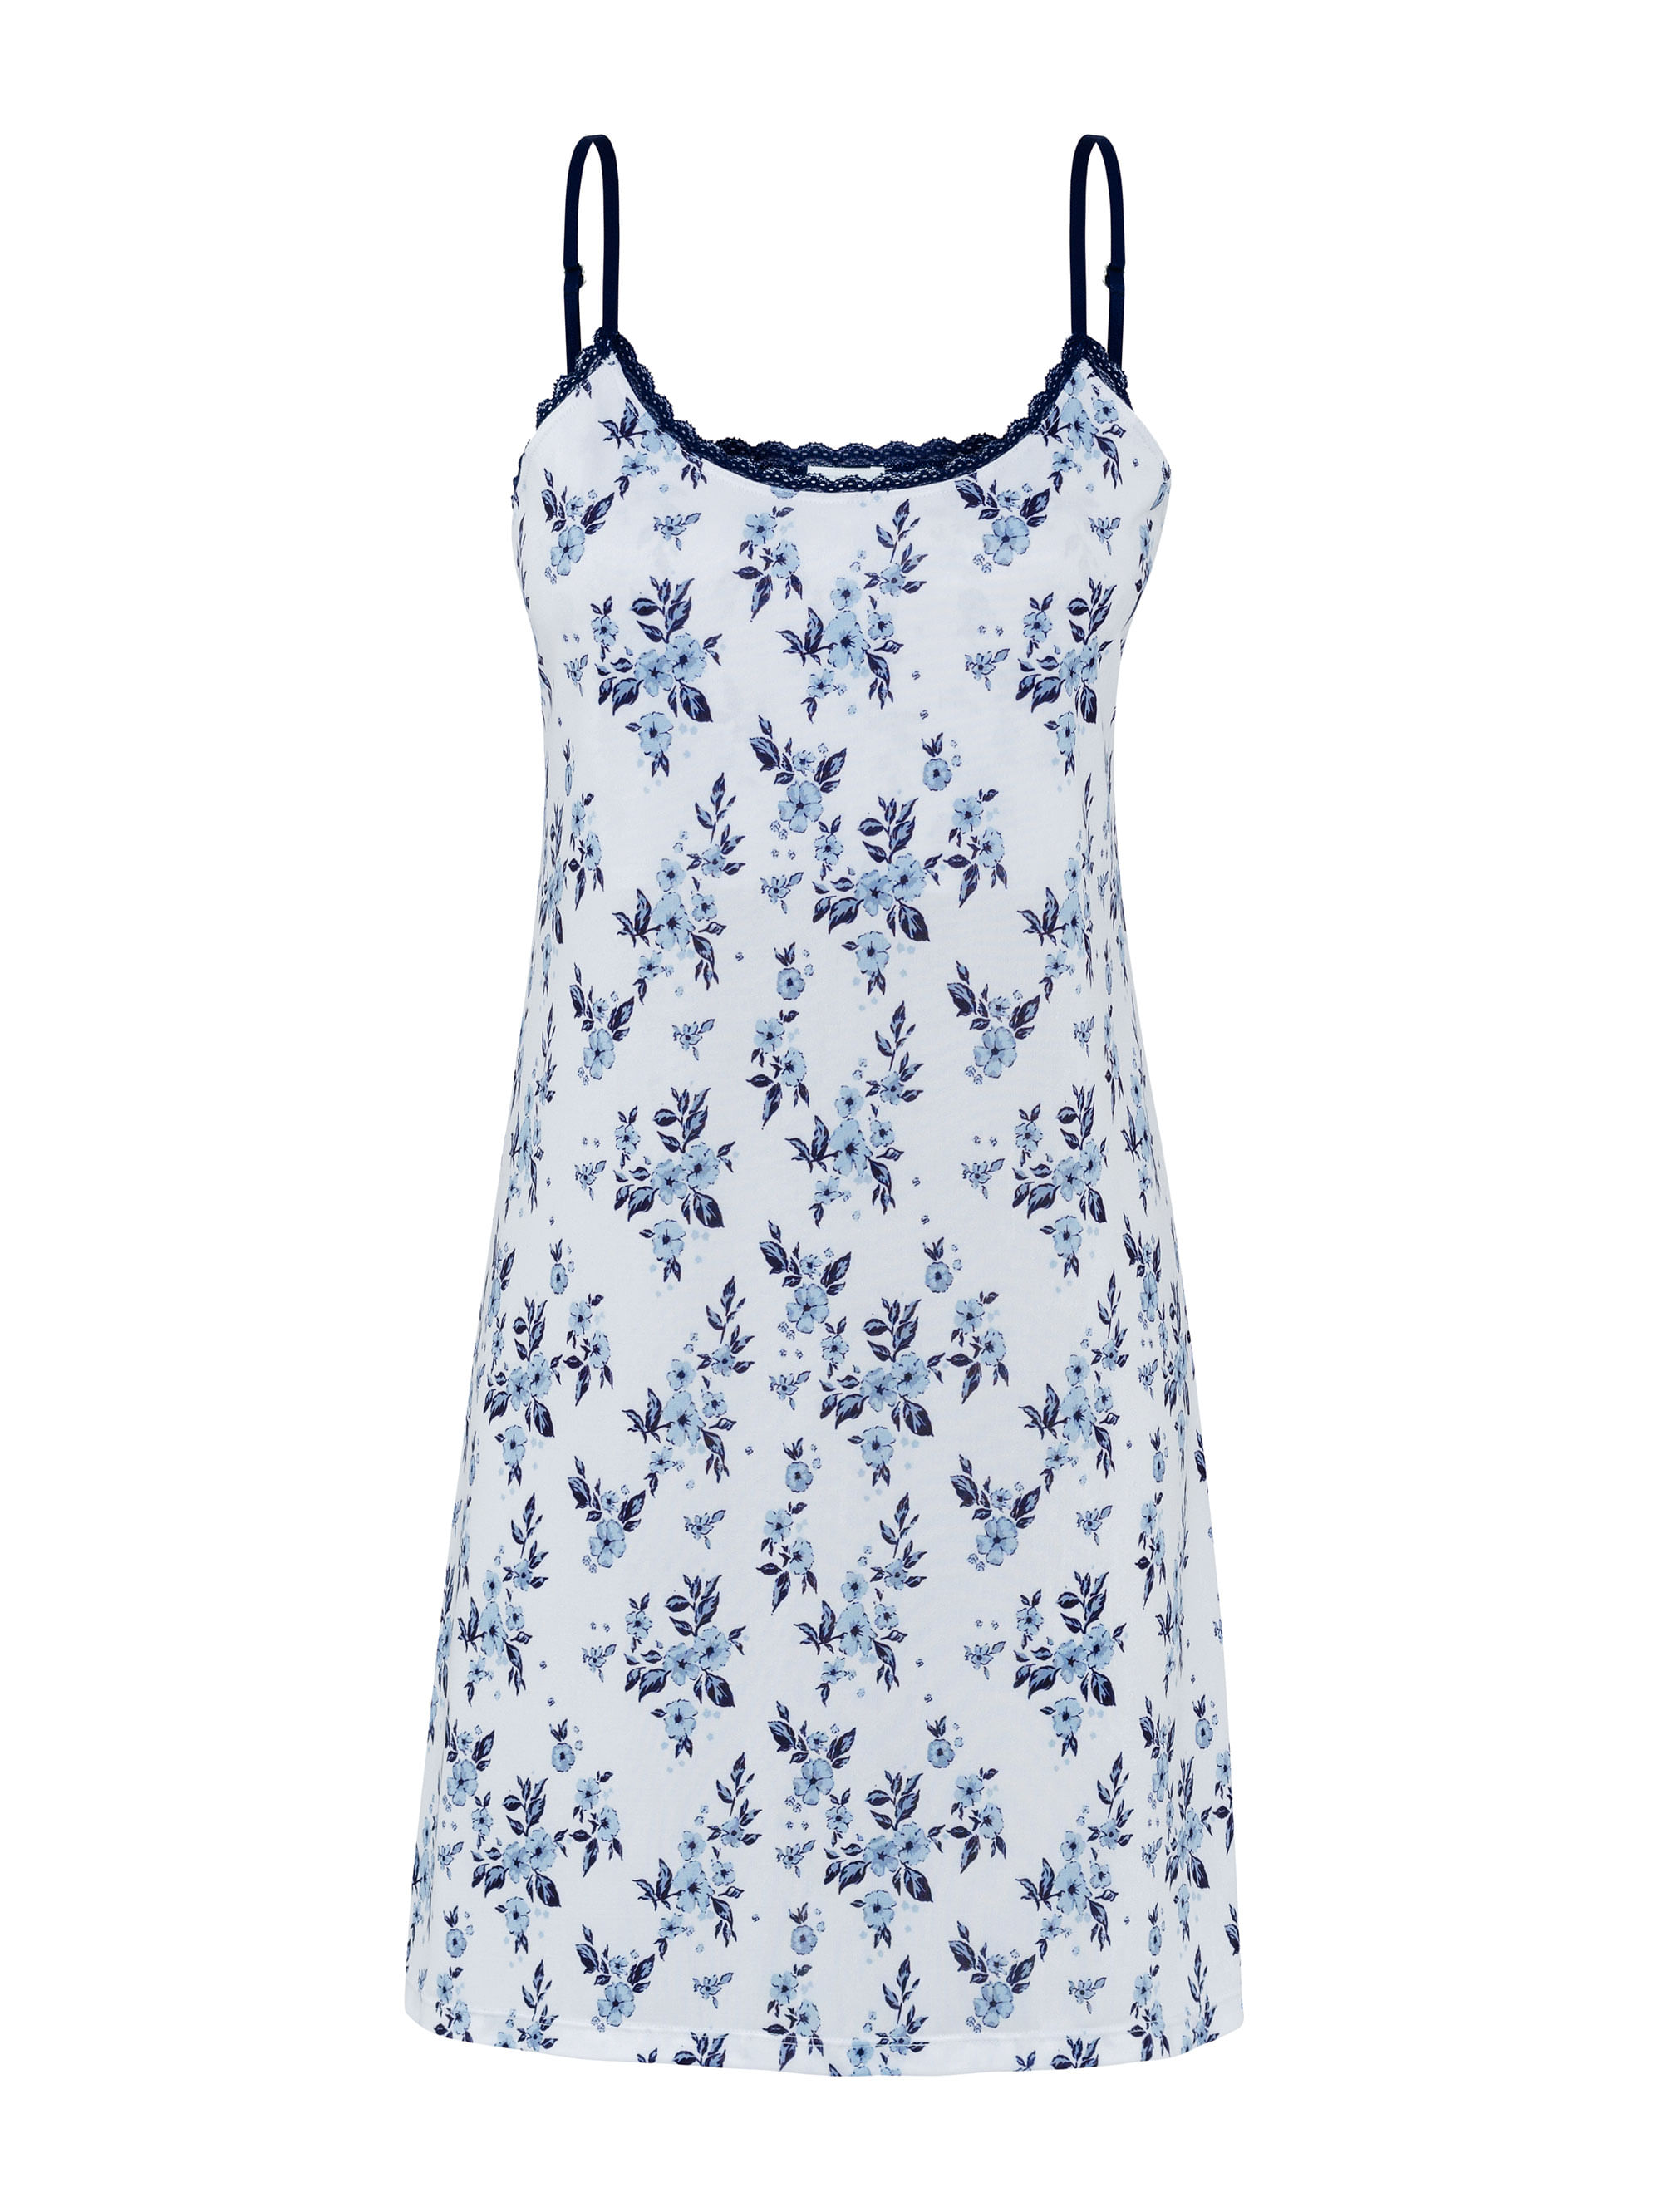 CAMISOLA-FLORAL-ANY-01.01.1827